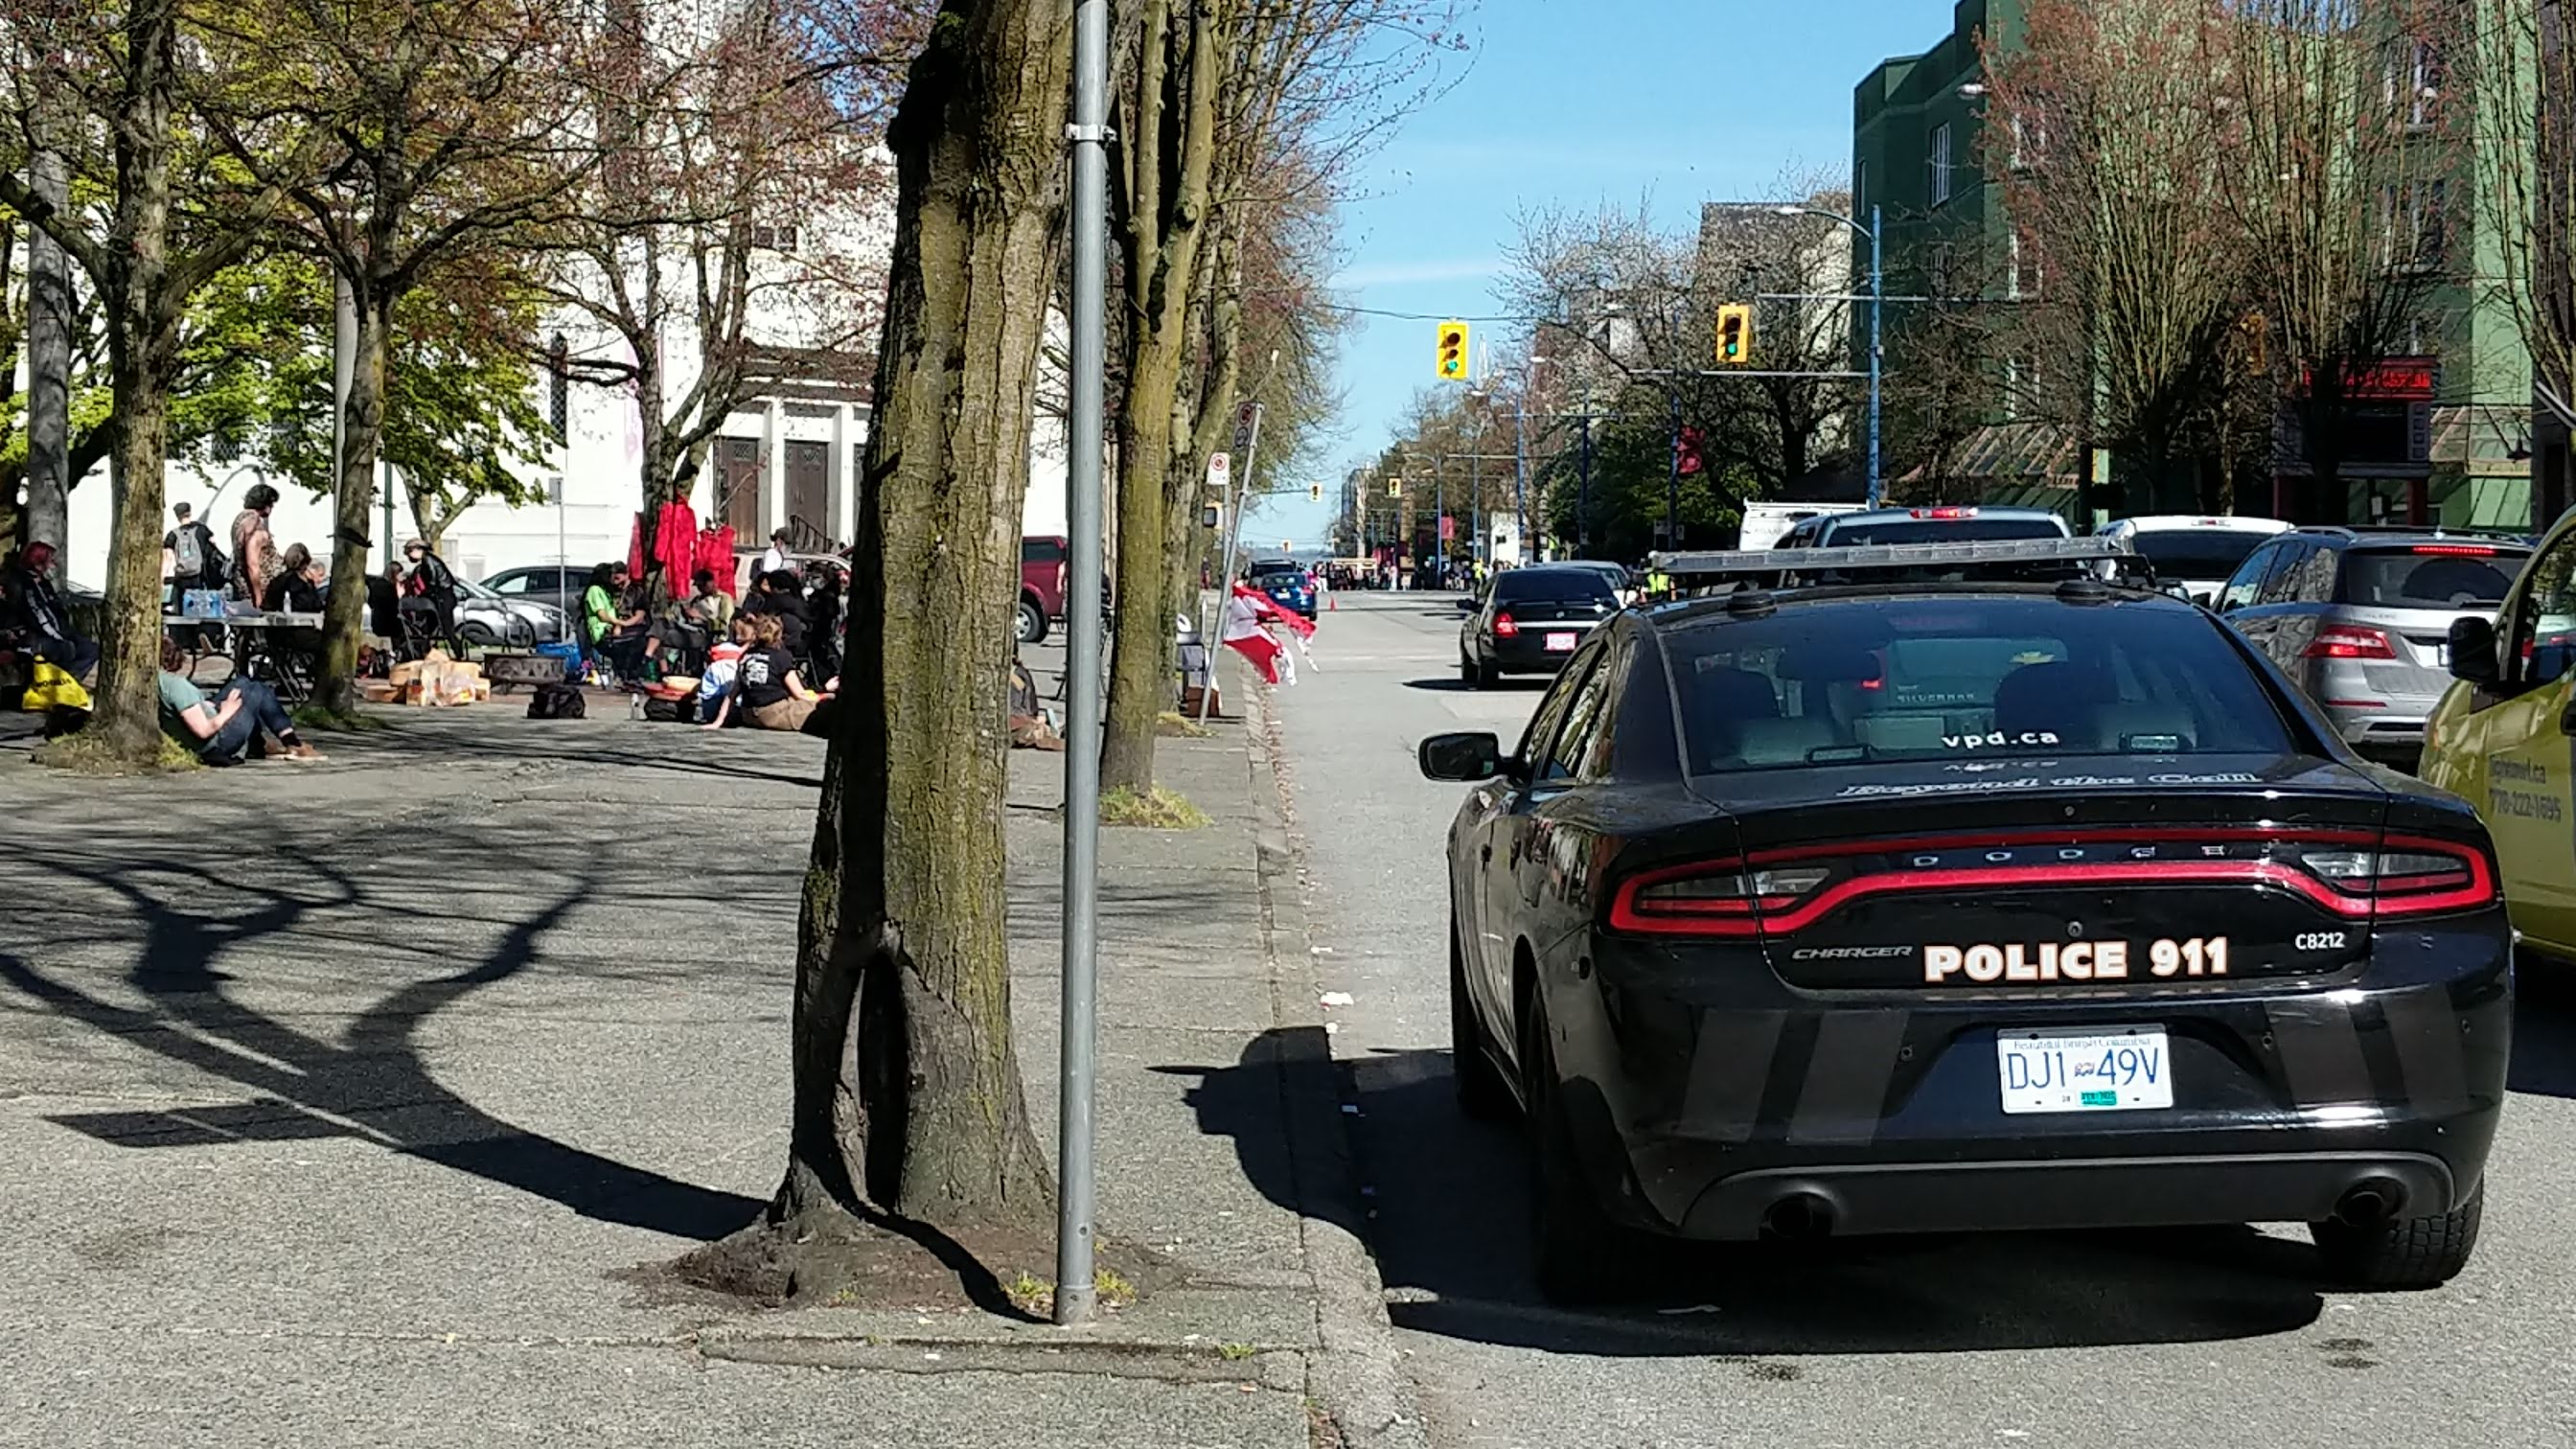 Vancouver POlice Department car parked on a street in Vancouver's Downtown Eastside. A group of people are gathered in a large area off the sidewalk.